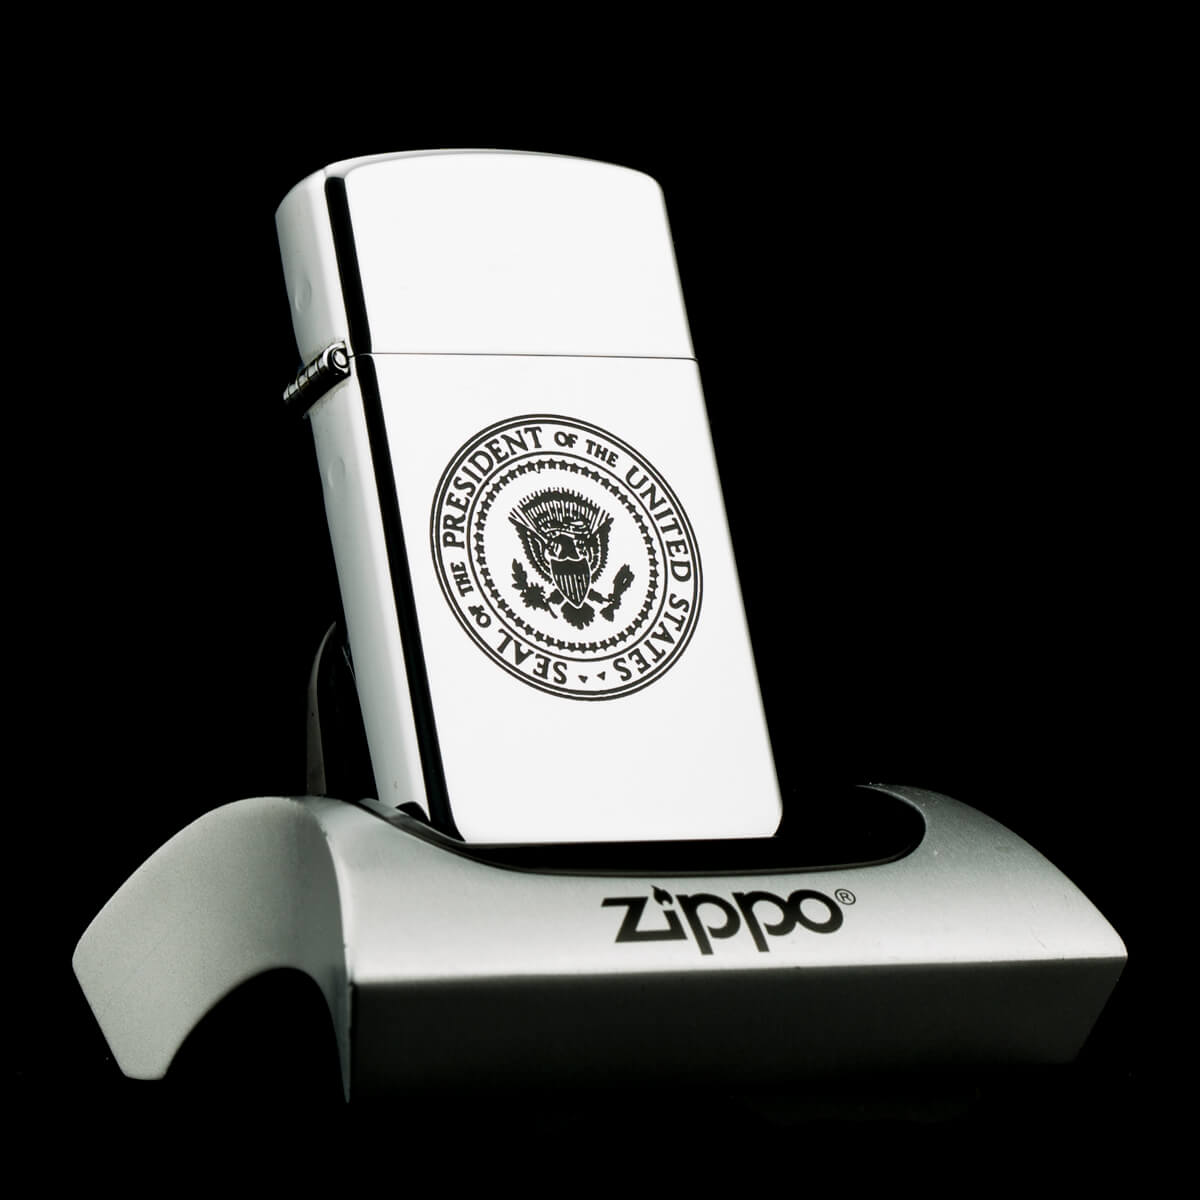 bat-lua-zippo-army-one-seal-of-president-of-the-united-states-iv-1998-huy-hieu-tong-thong-my